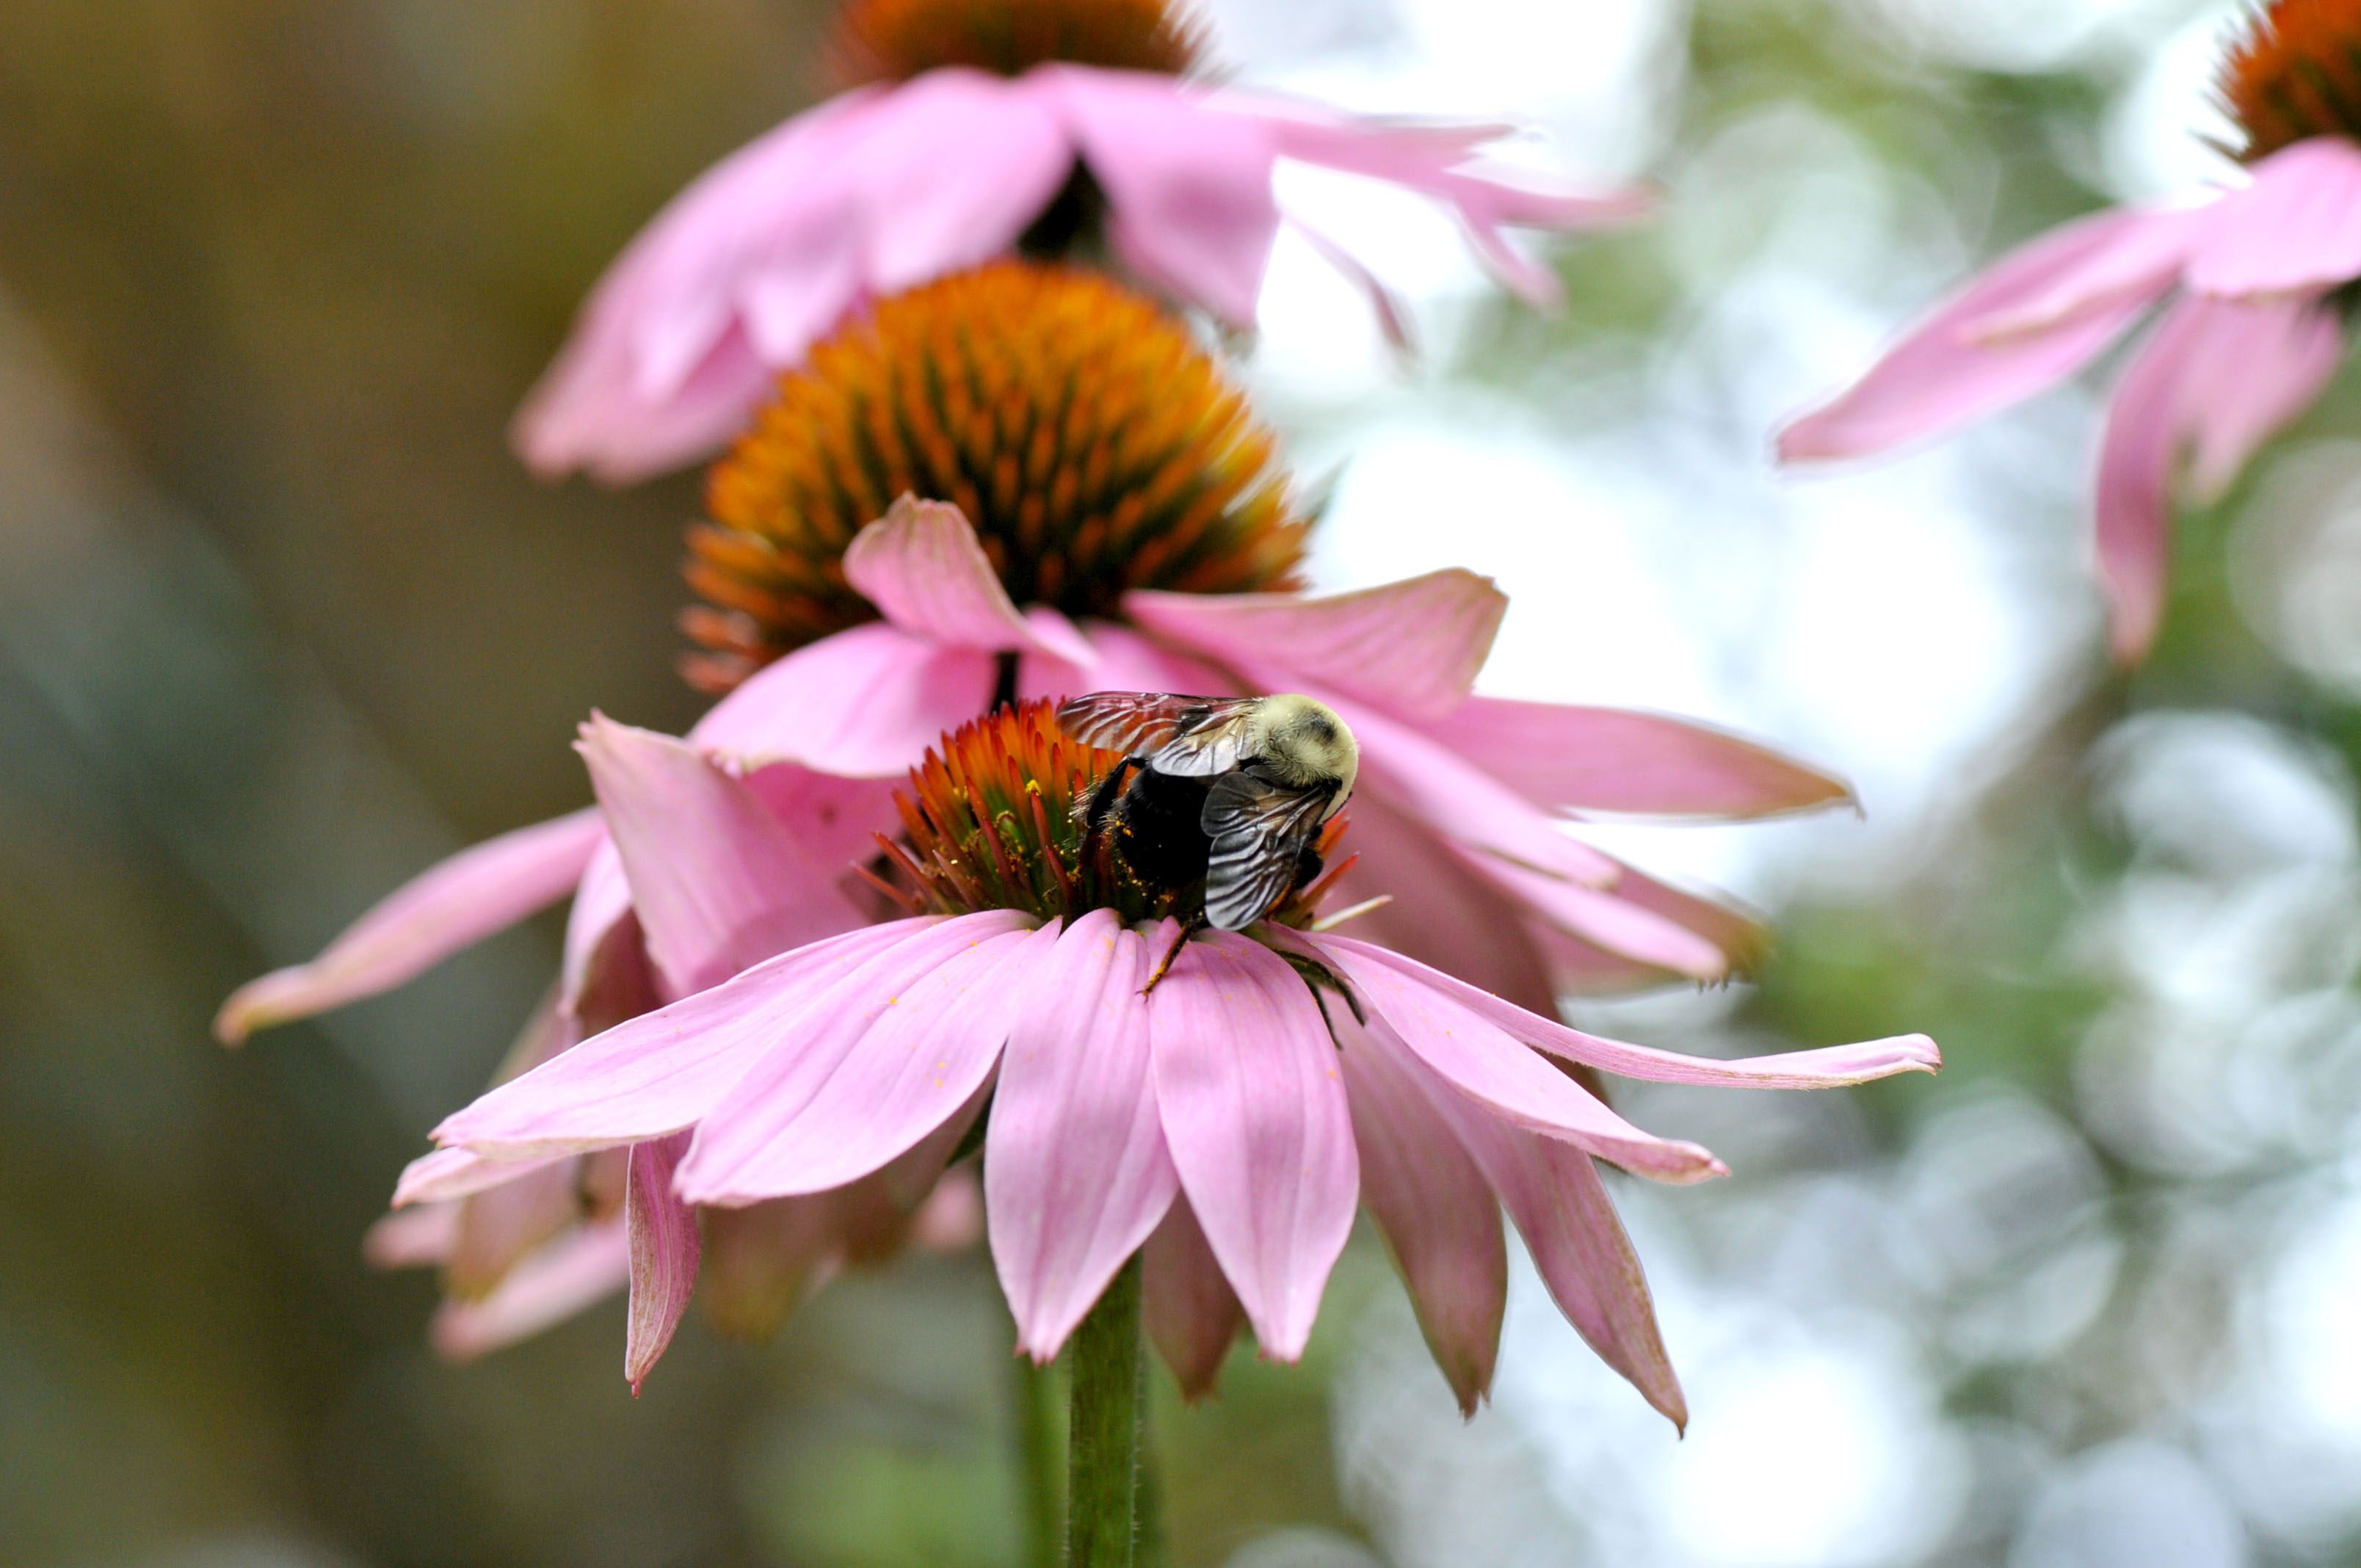 Bumblebee on Echinacea flower